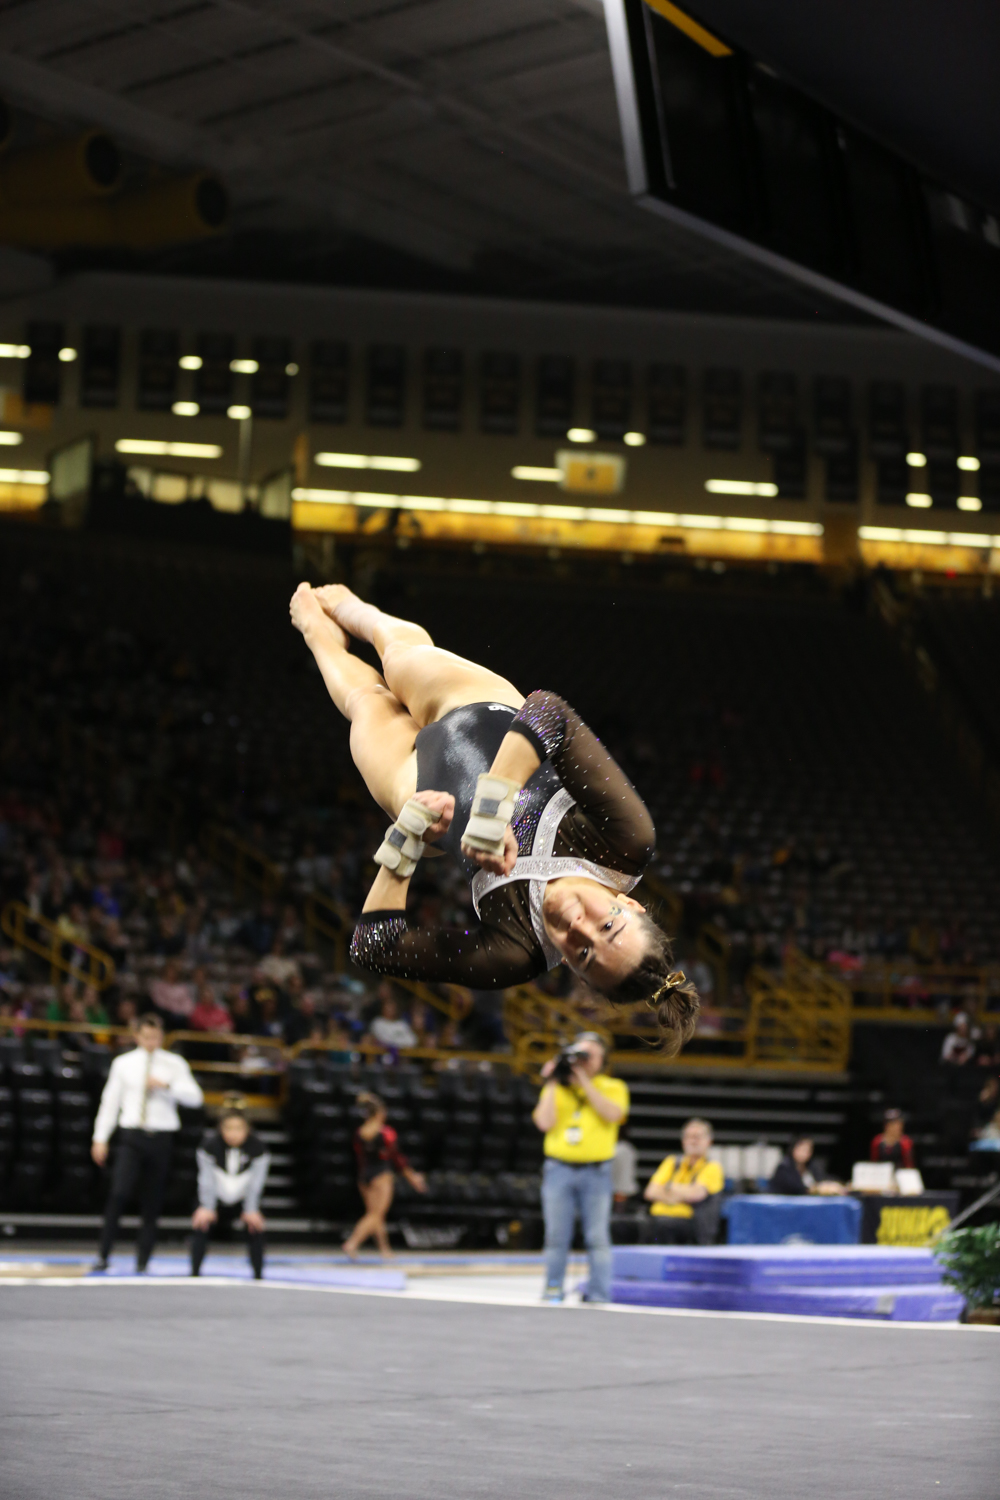 Iowa+Gymnast+Allie+Gilchrist+performs+during+the+floor+event+during+a+gymnastics+meet+against+Rutgers+on+Saturday%2C+Jan.+26%2C+2019.+The+Hawkeyes+defeated+the+Scarlet+Knights+194.575+to+191.675.+